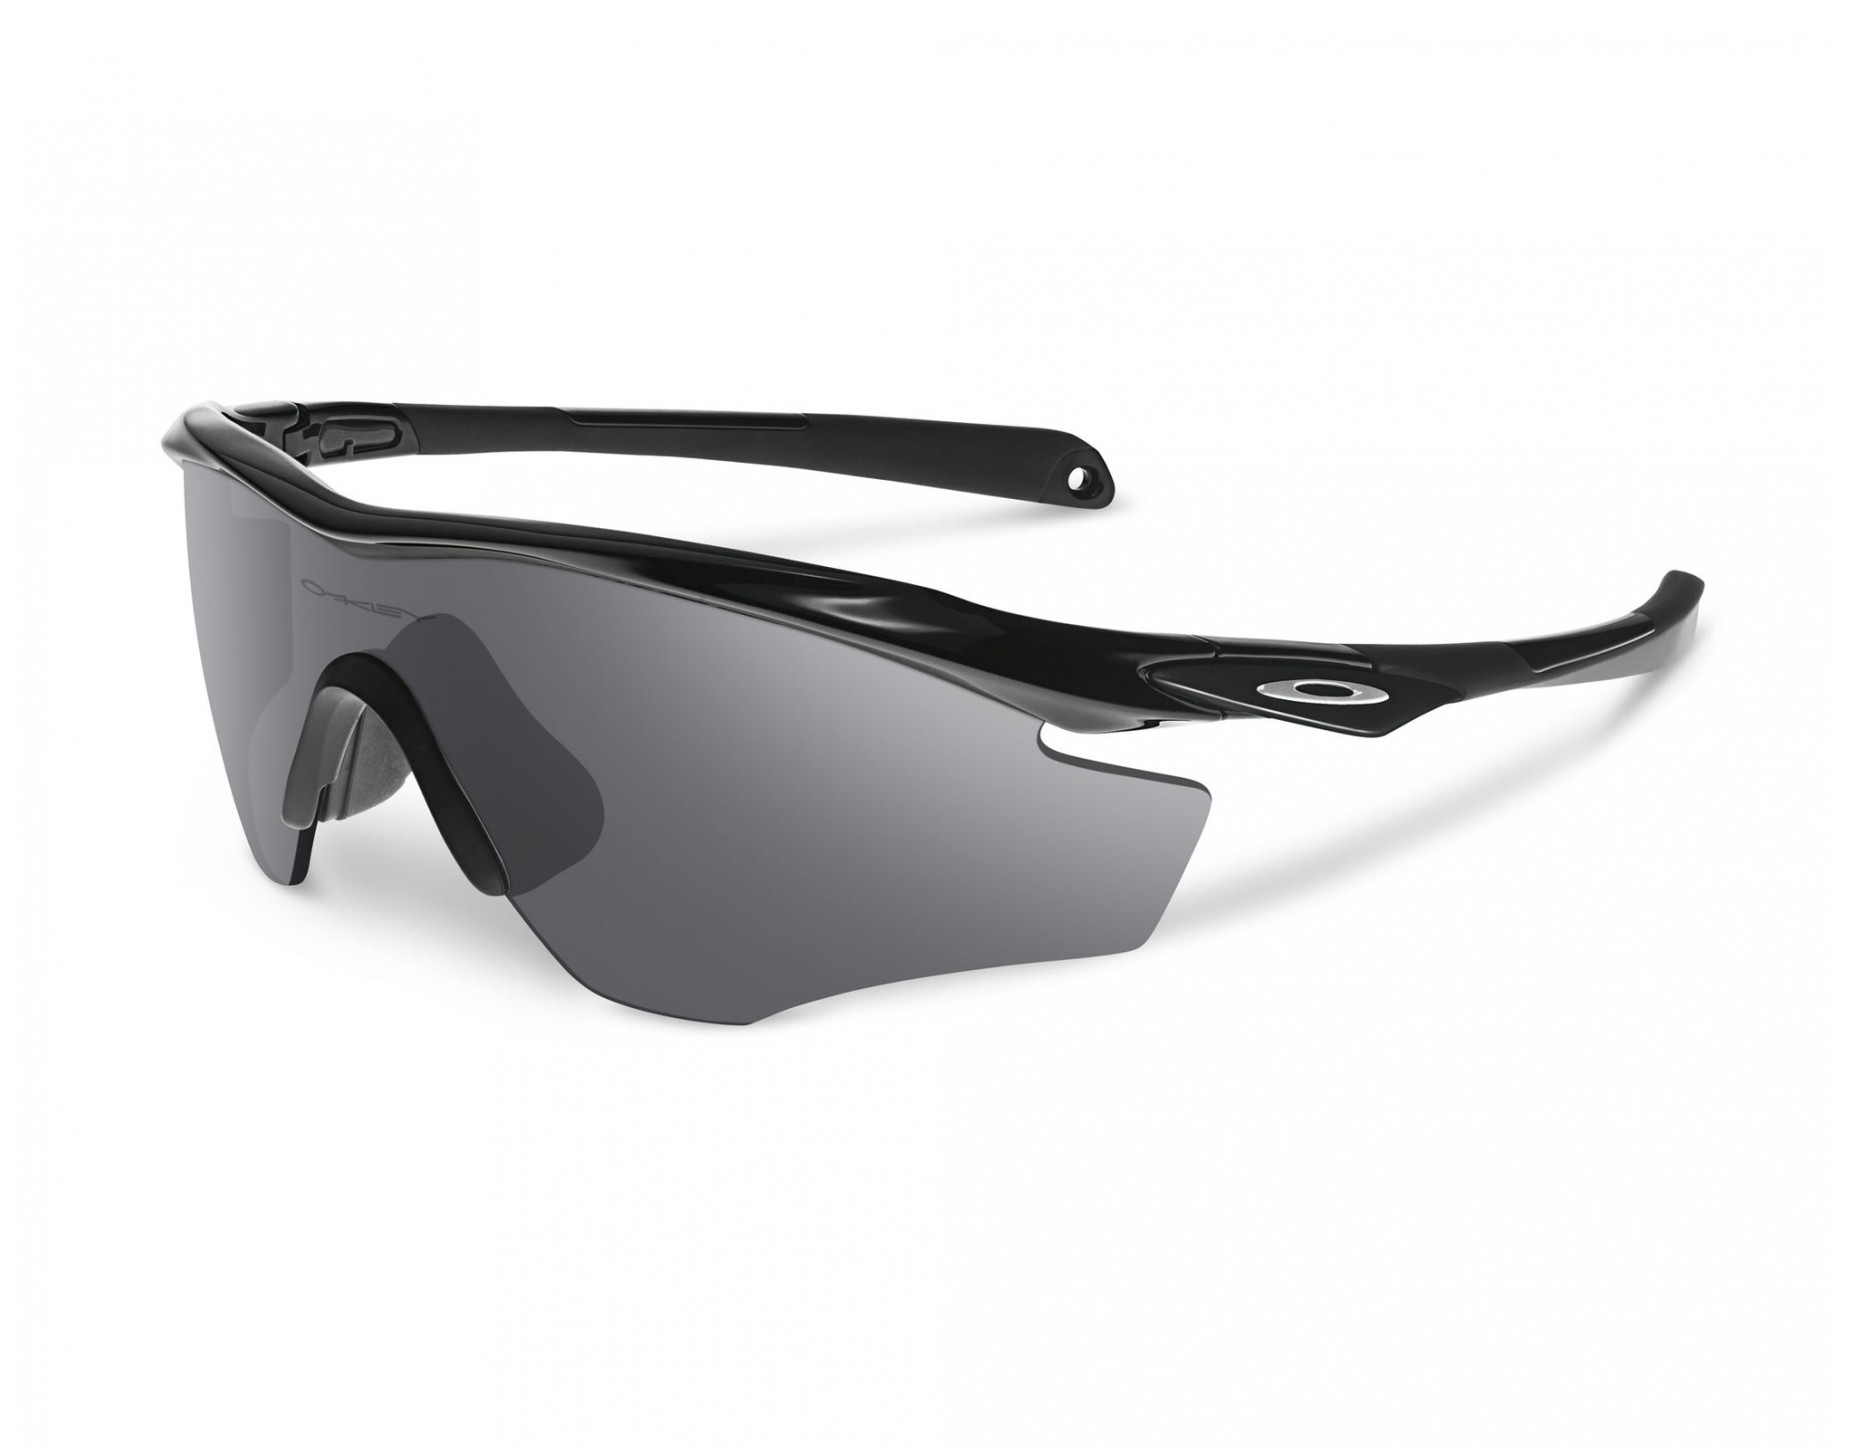 Oakley M2 Frame Glasses : OAKLEY M2 Frame sports glasses offers at the cycling shop ...